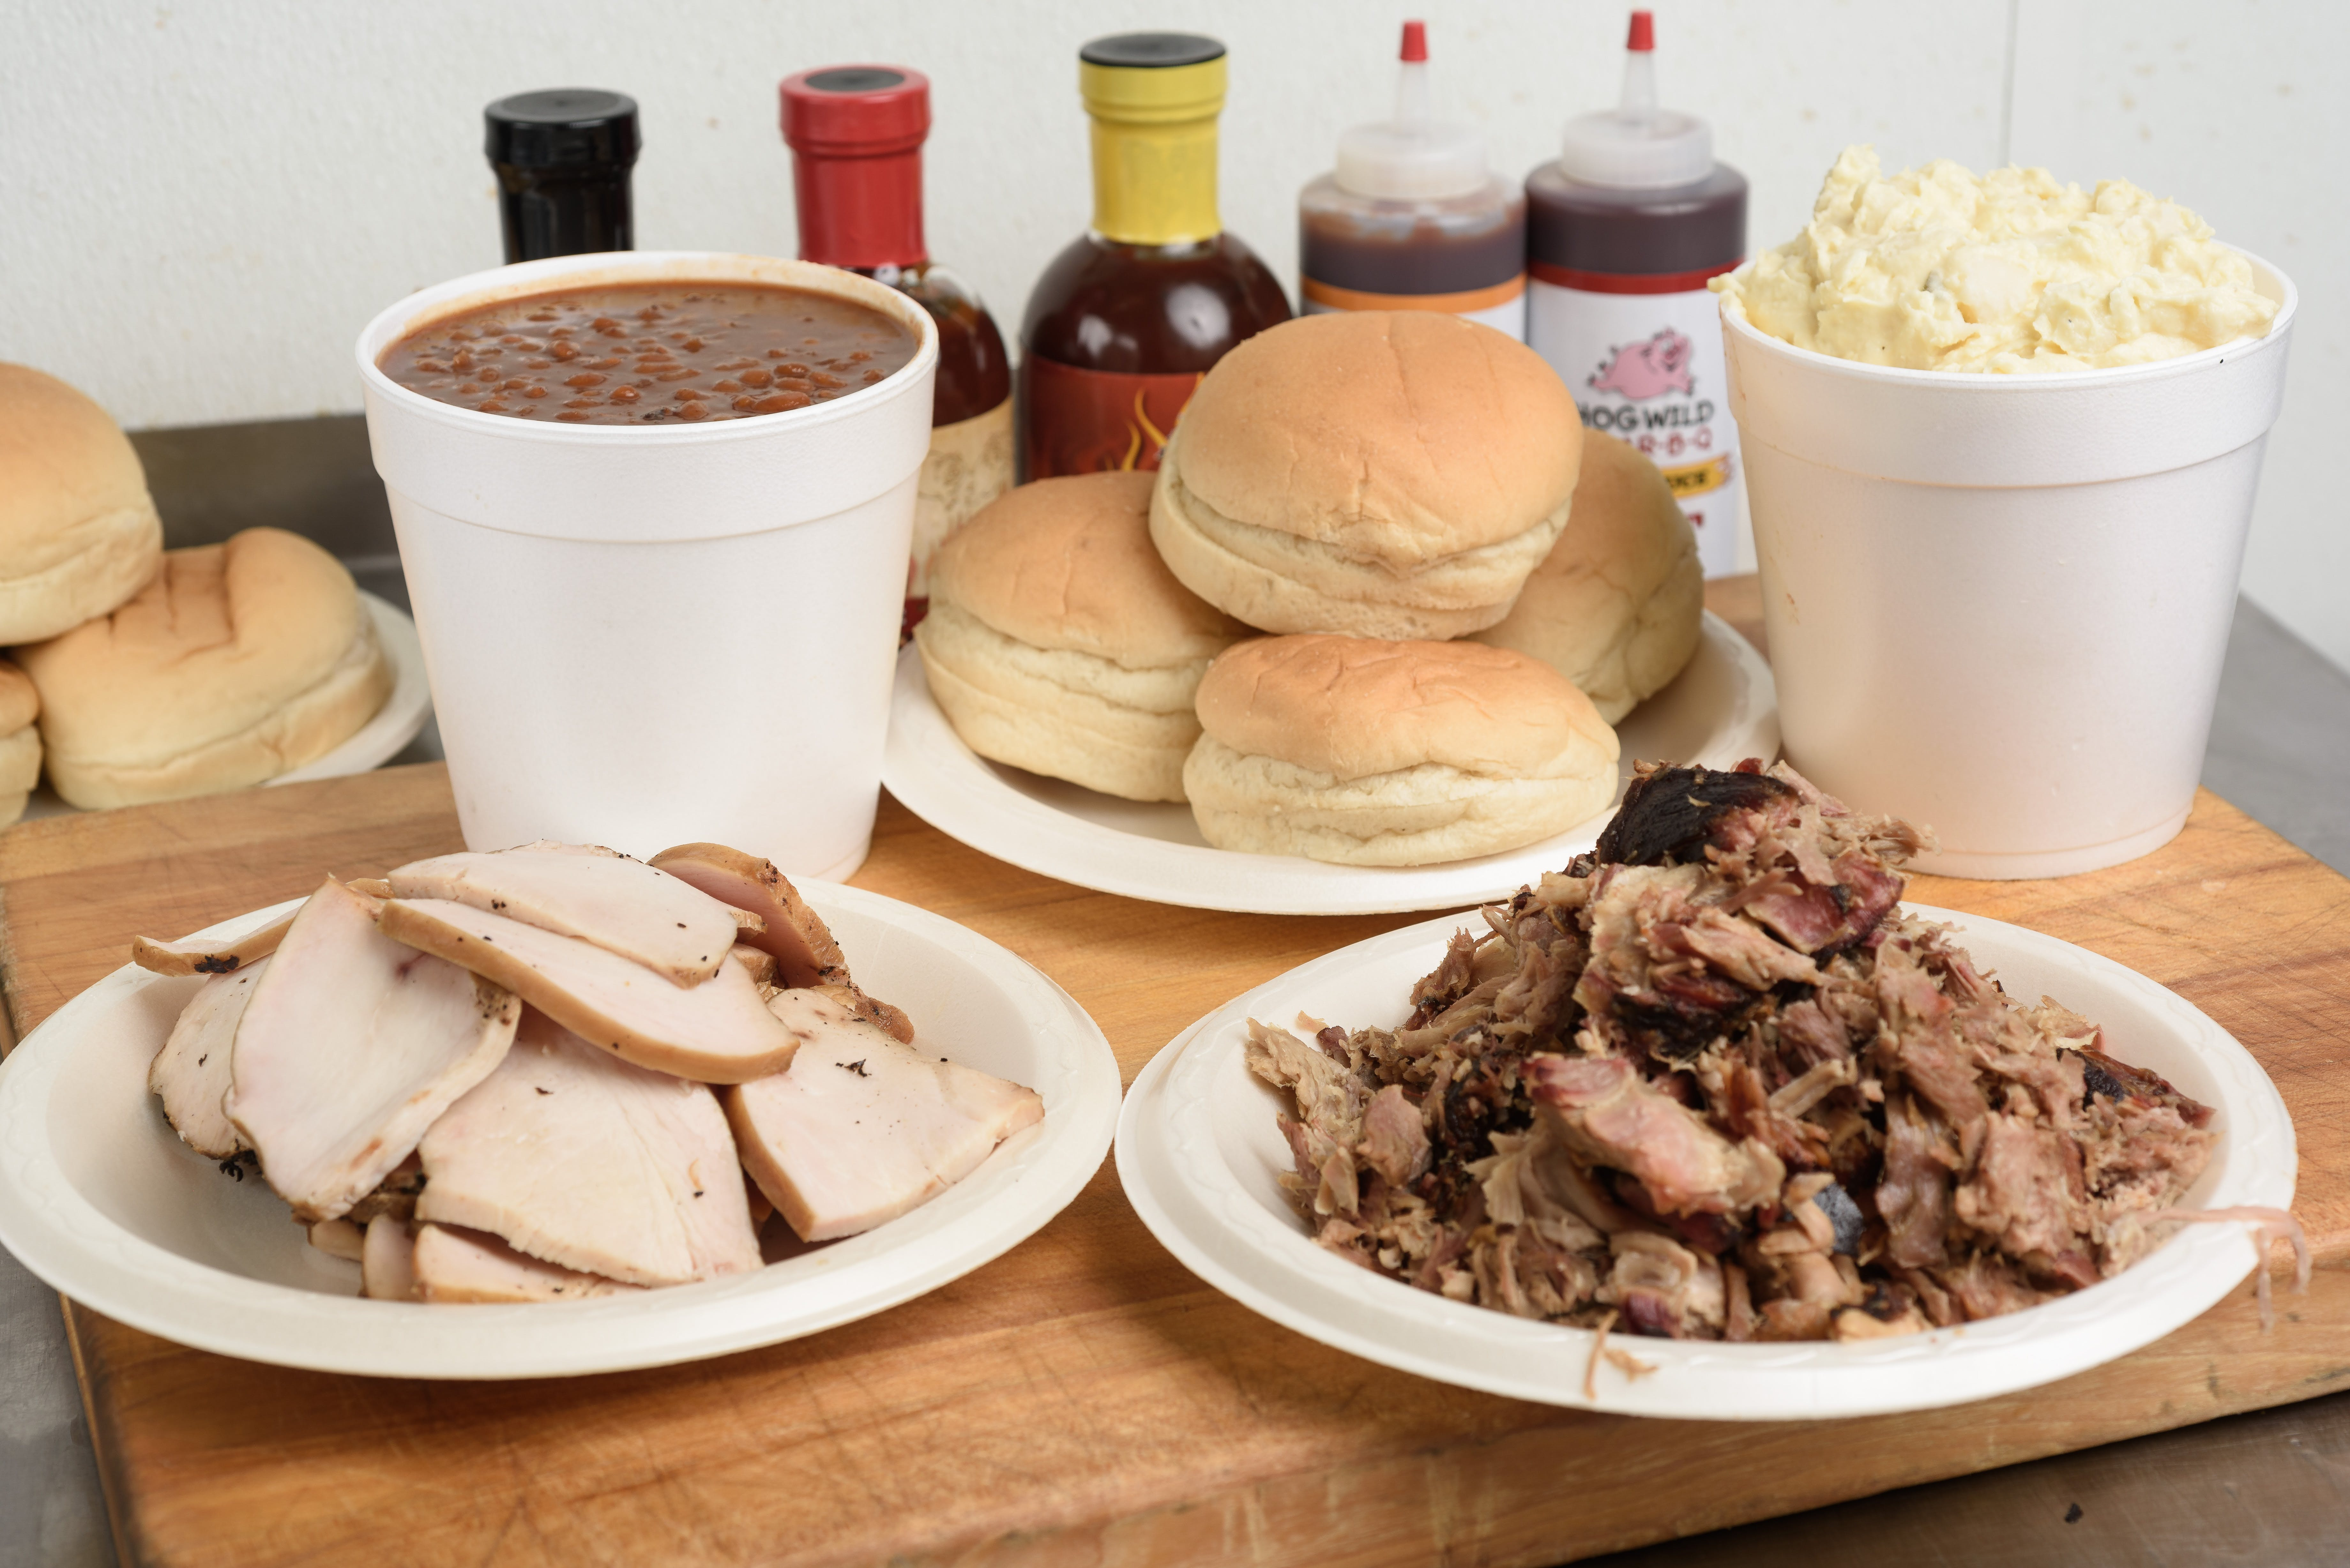 Family Pack #2 from Hog Wild Pit BBQ & Catering in Lawrence, KS